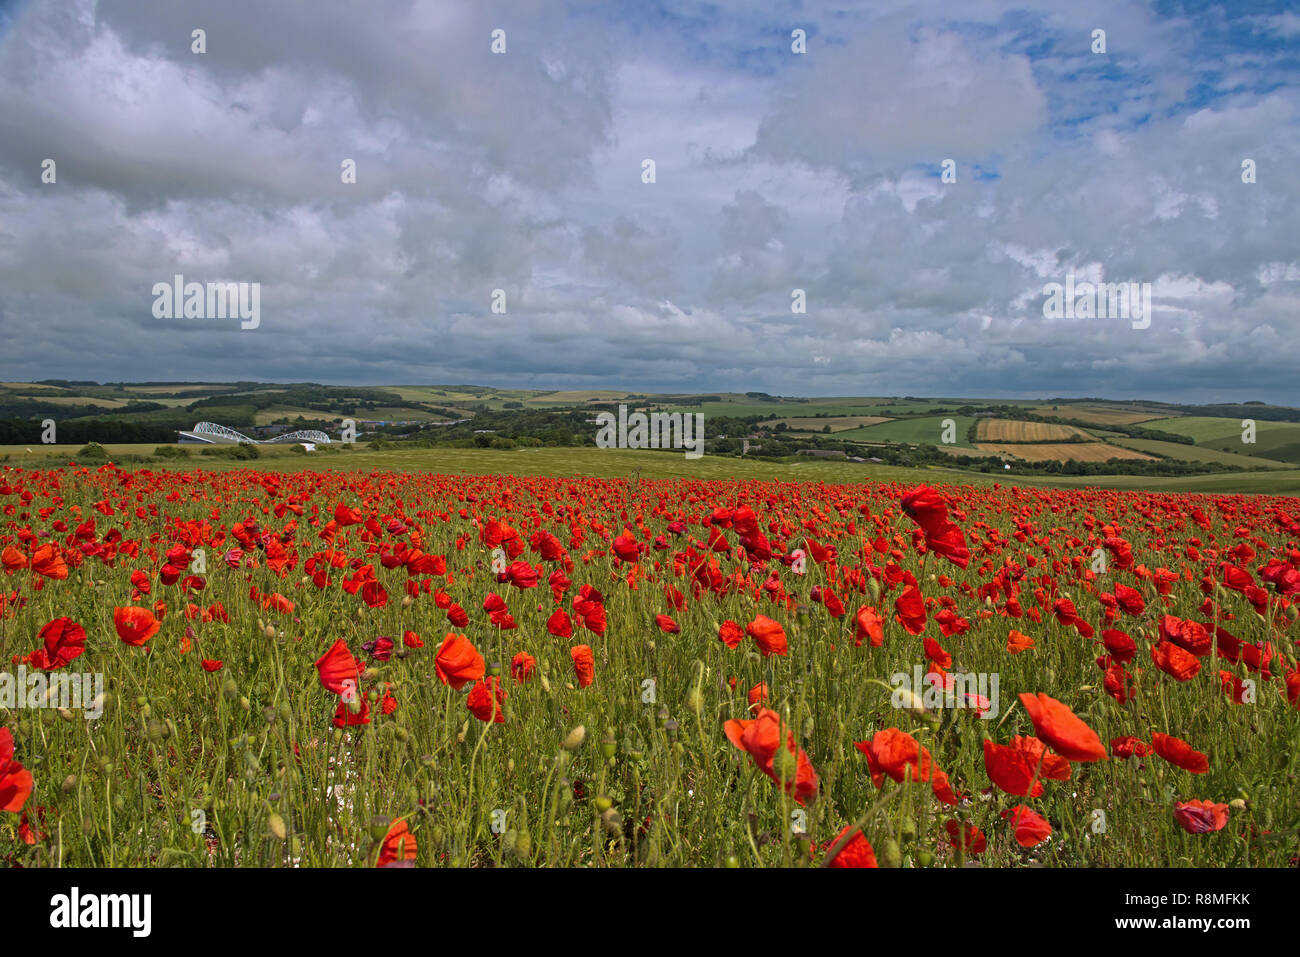 A field of Poppies - Papaver rhoeas on the South Downs National Park, East Sussex, England, Uk, Gb. Stock Photo